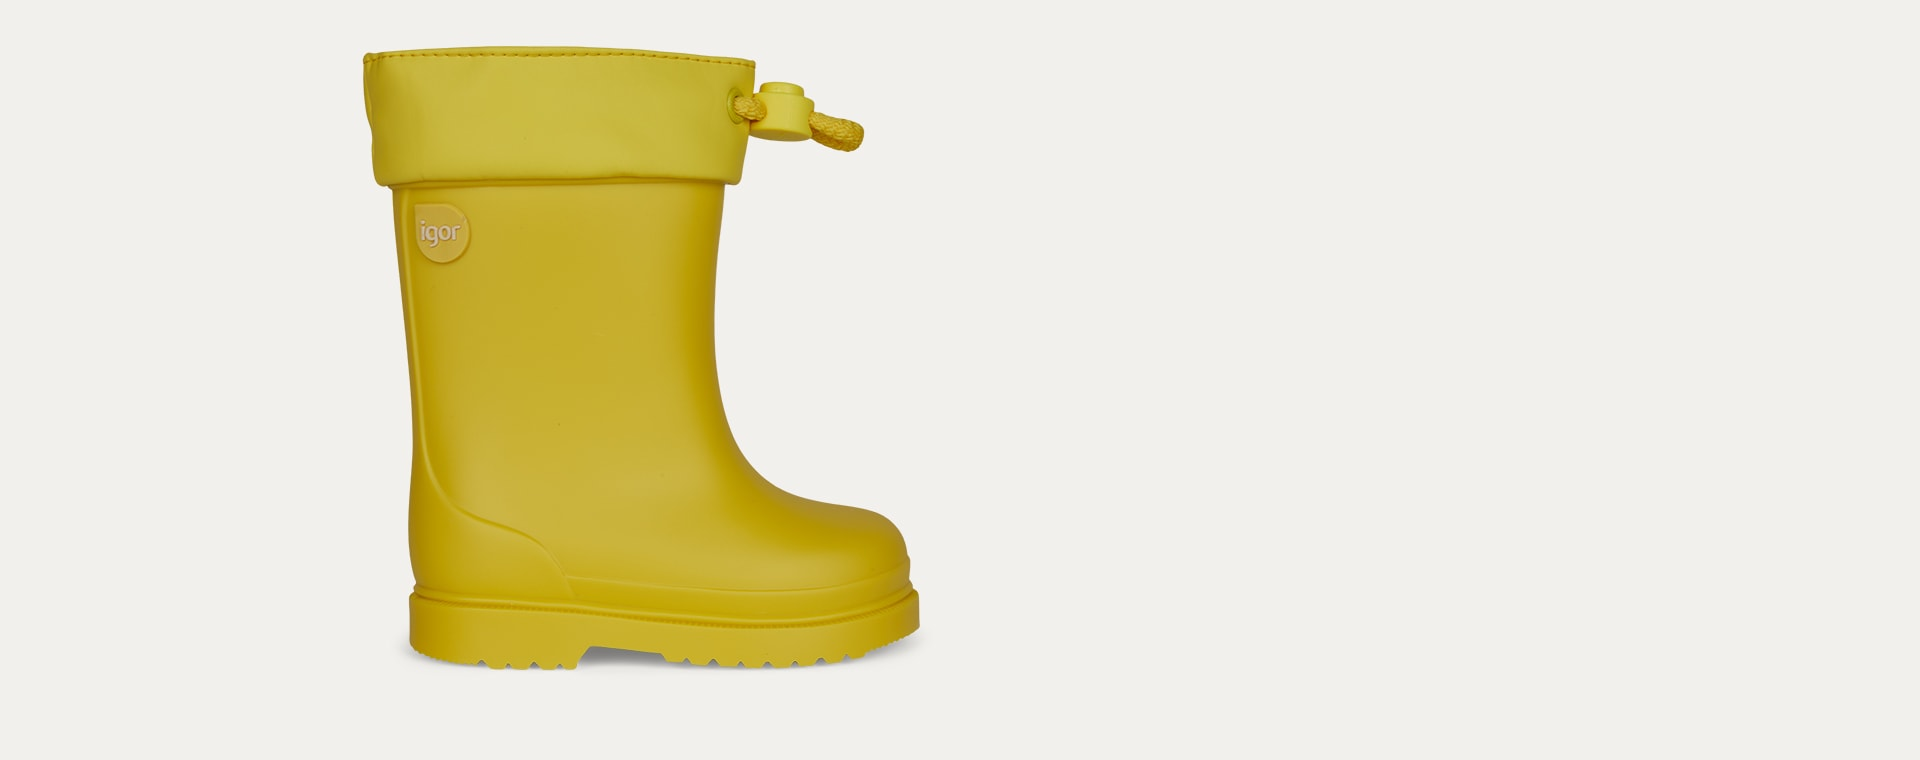 Yellow igor Chuffo Cuello Lined Rain Boot